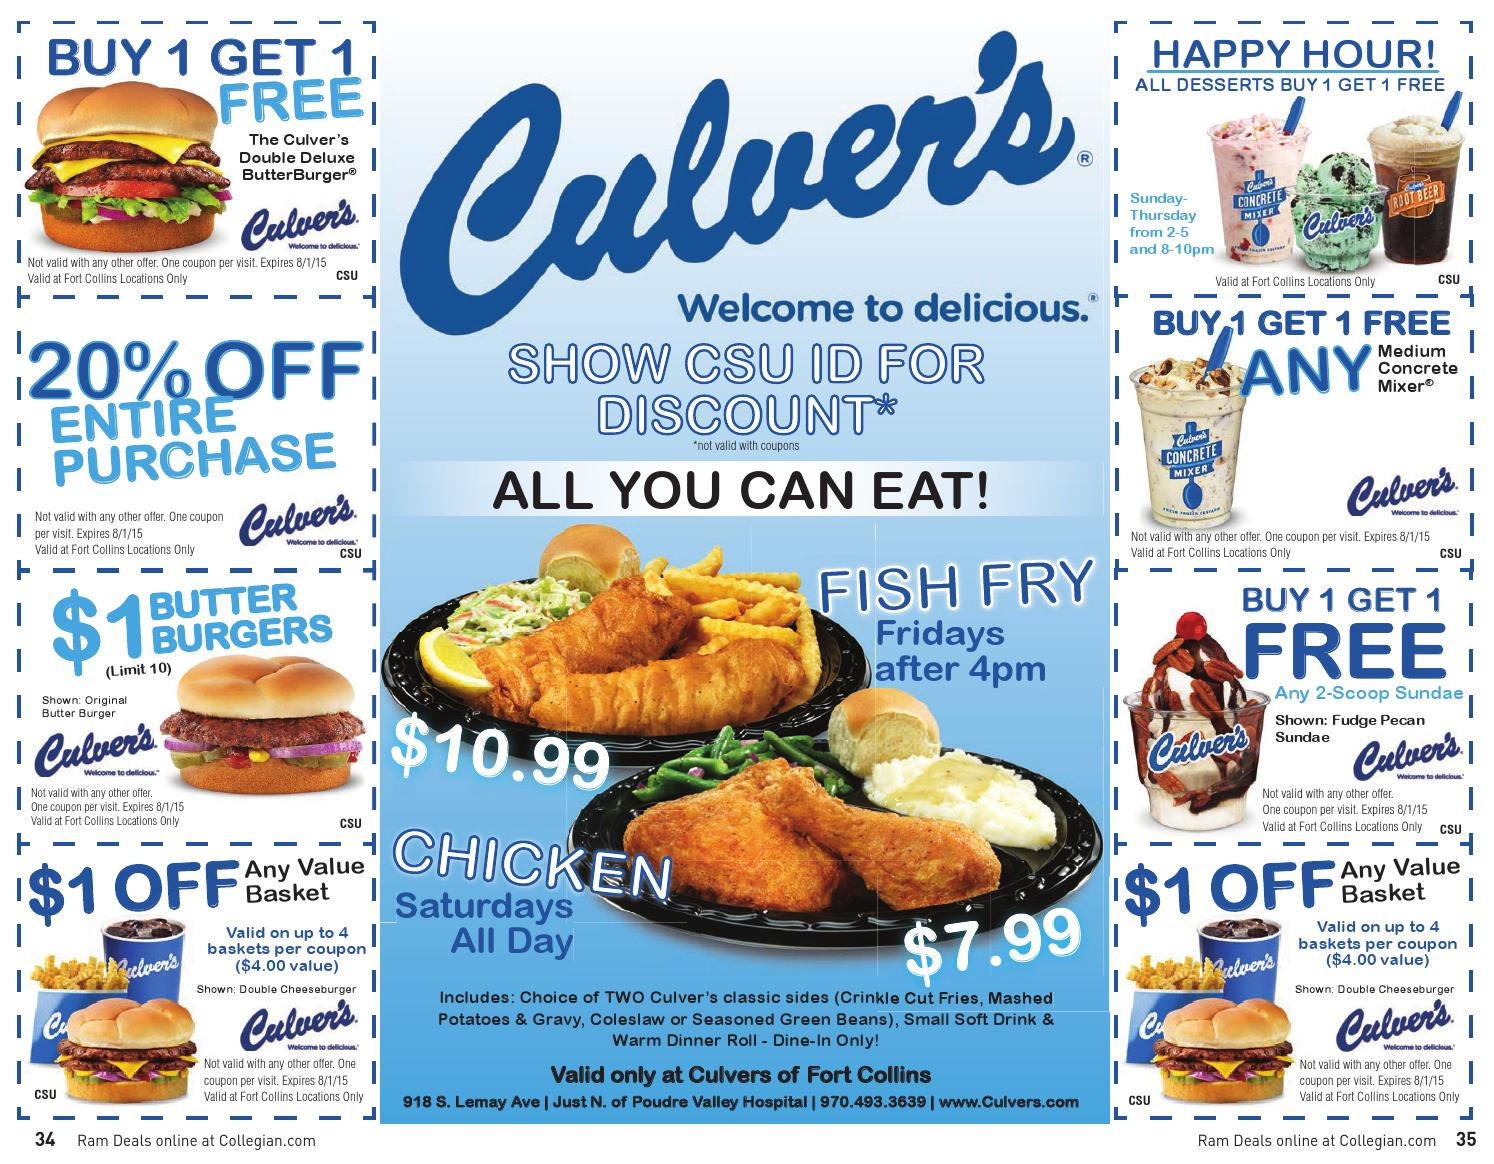 At Culvers Sign Up For eClub & Receive Discounts, Coupons, & More. Shop and save at Culvers. Sign Up For eClub & Receive Discounts, Coupons, & More.